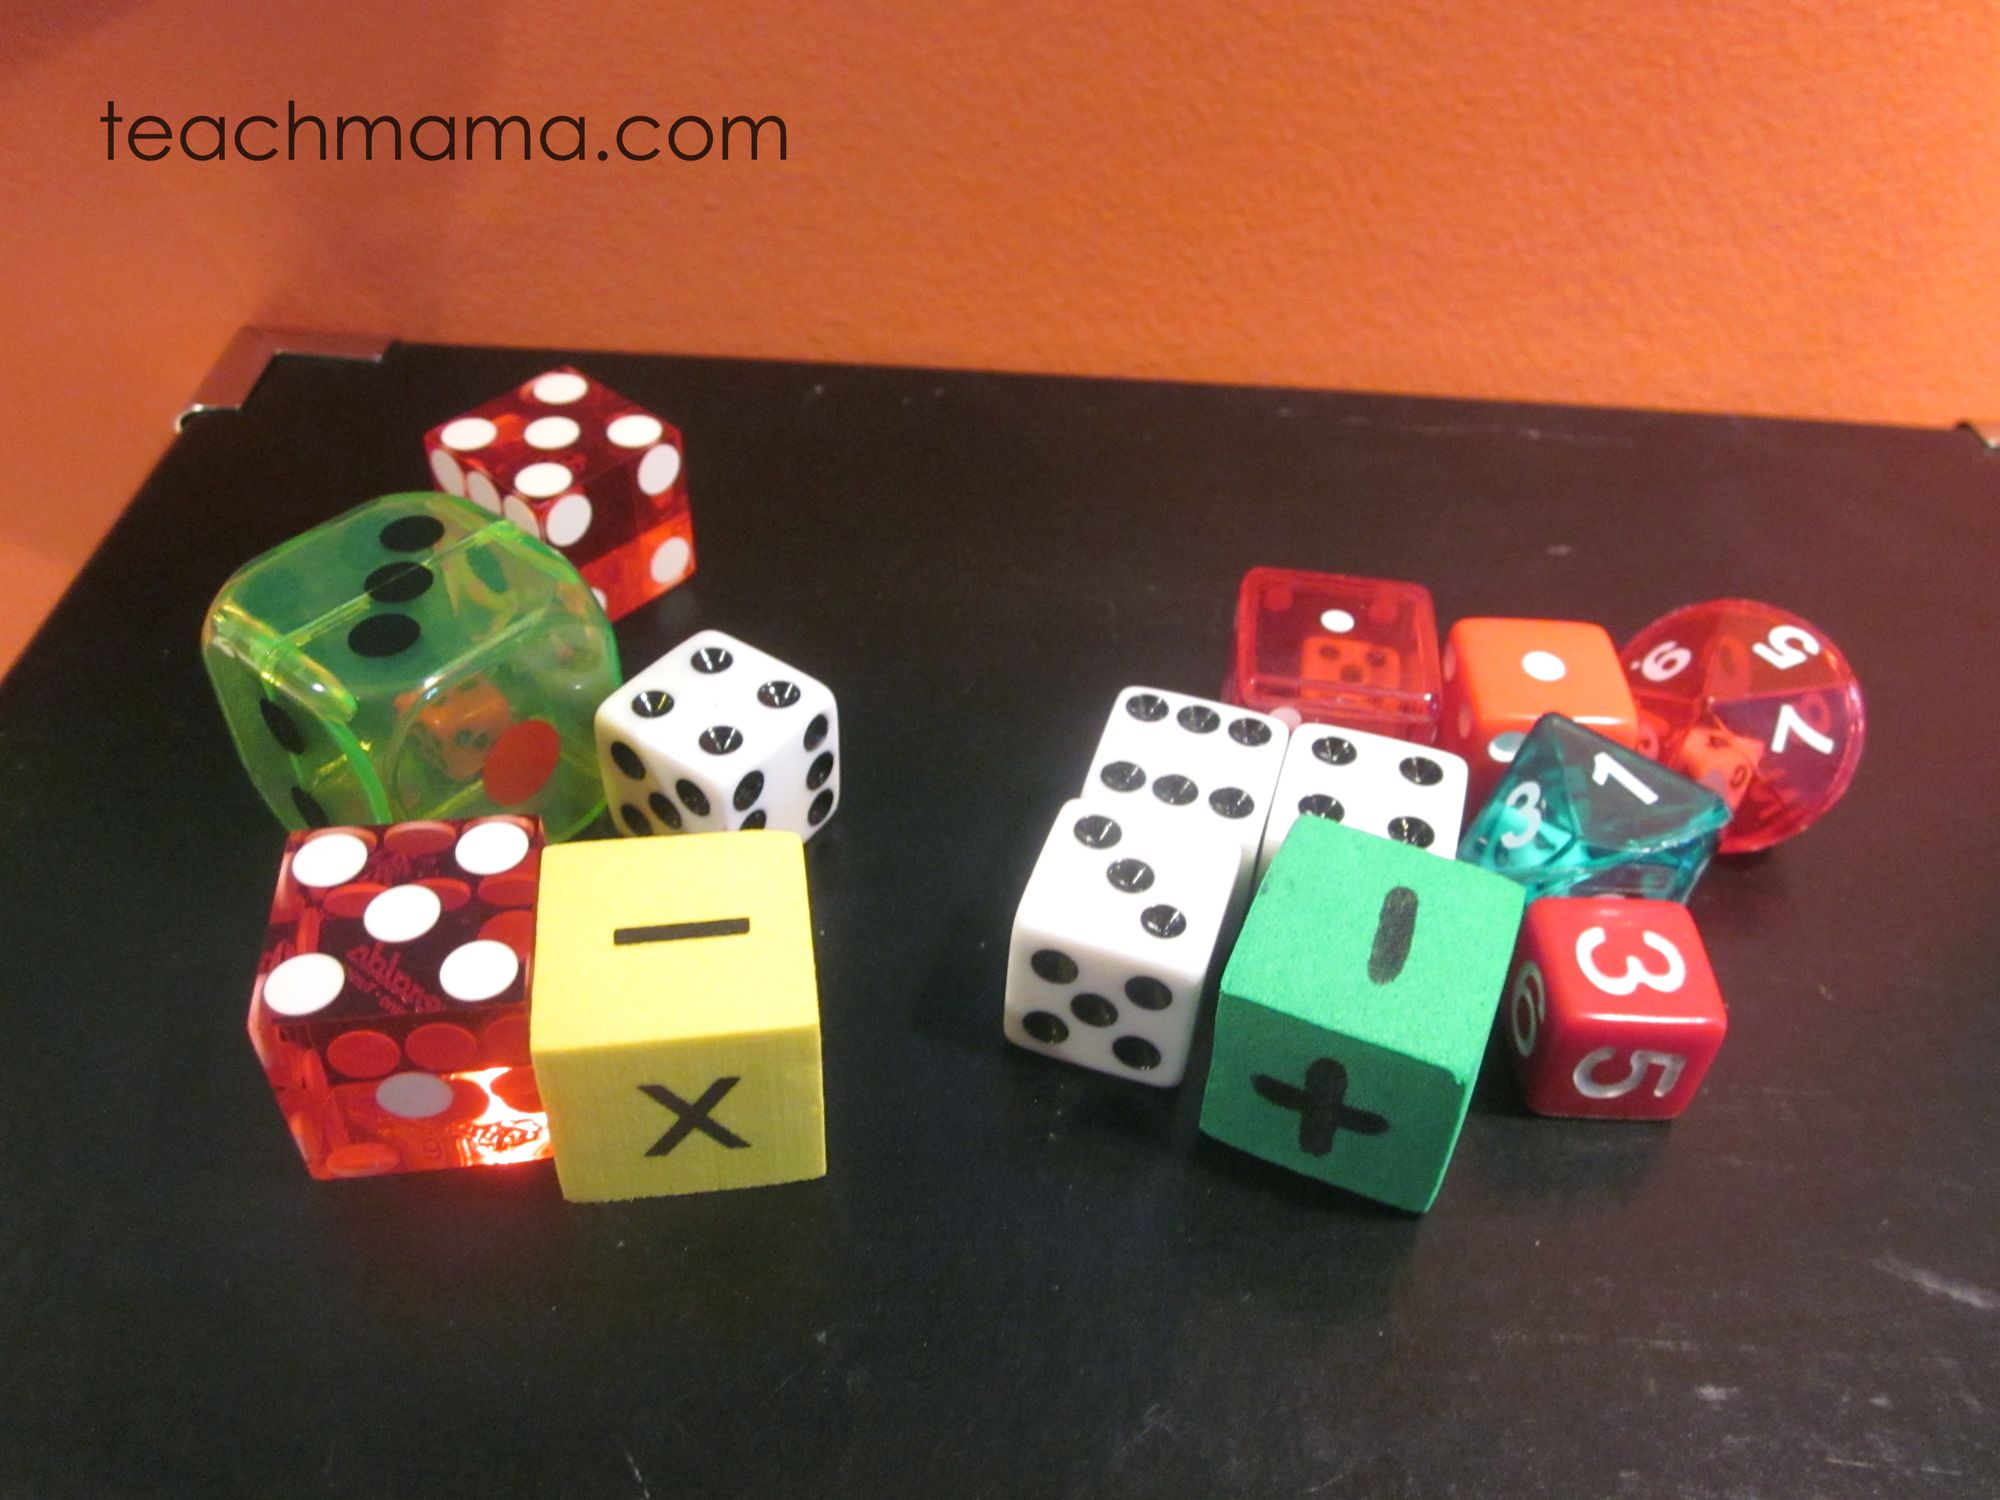 Practicing Math Facts With Crazy Mixed Up Dice Math